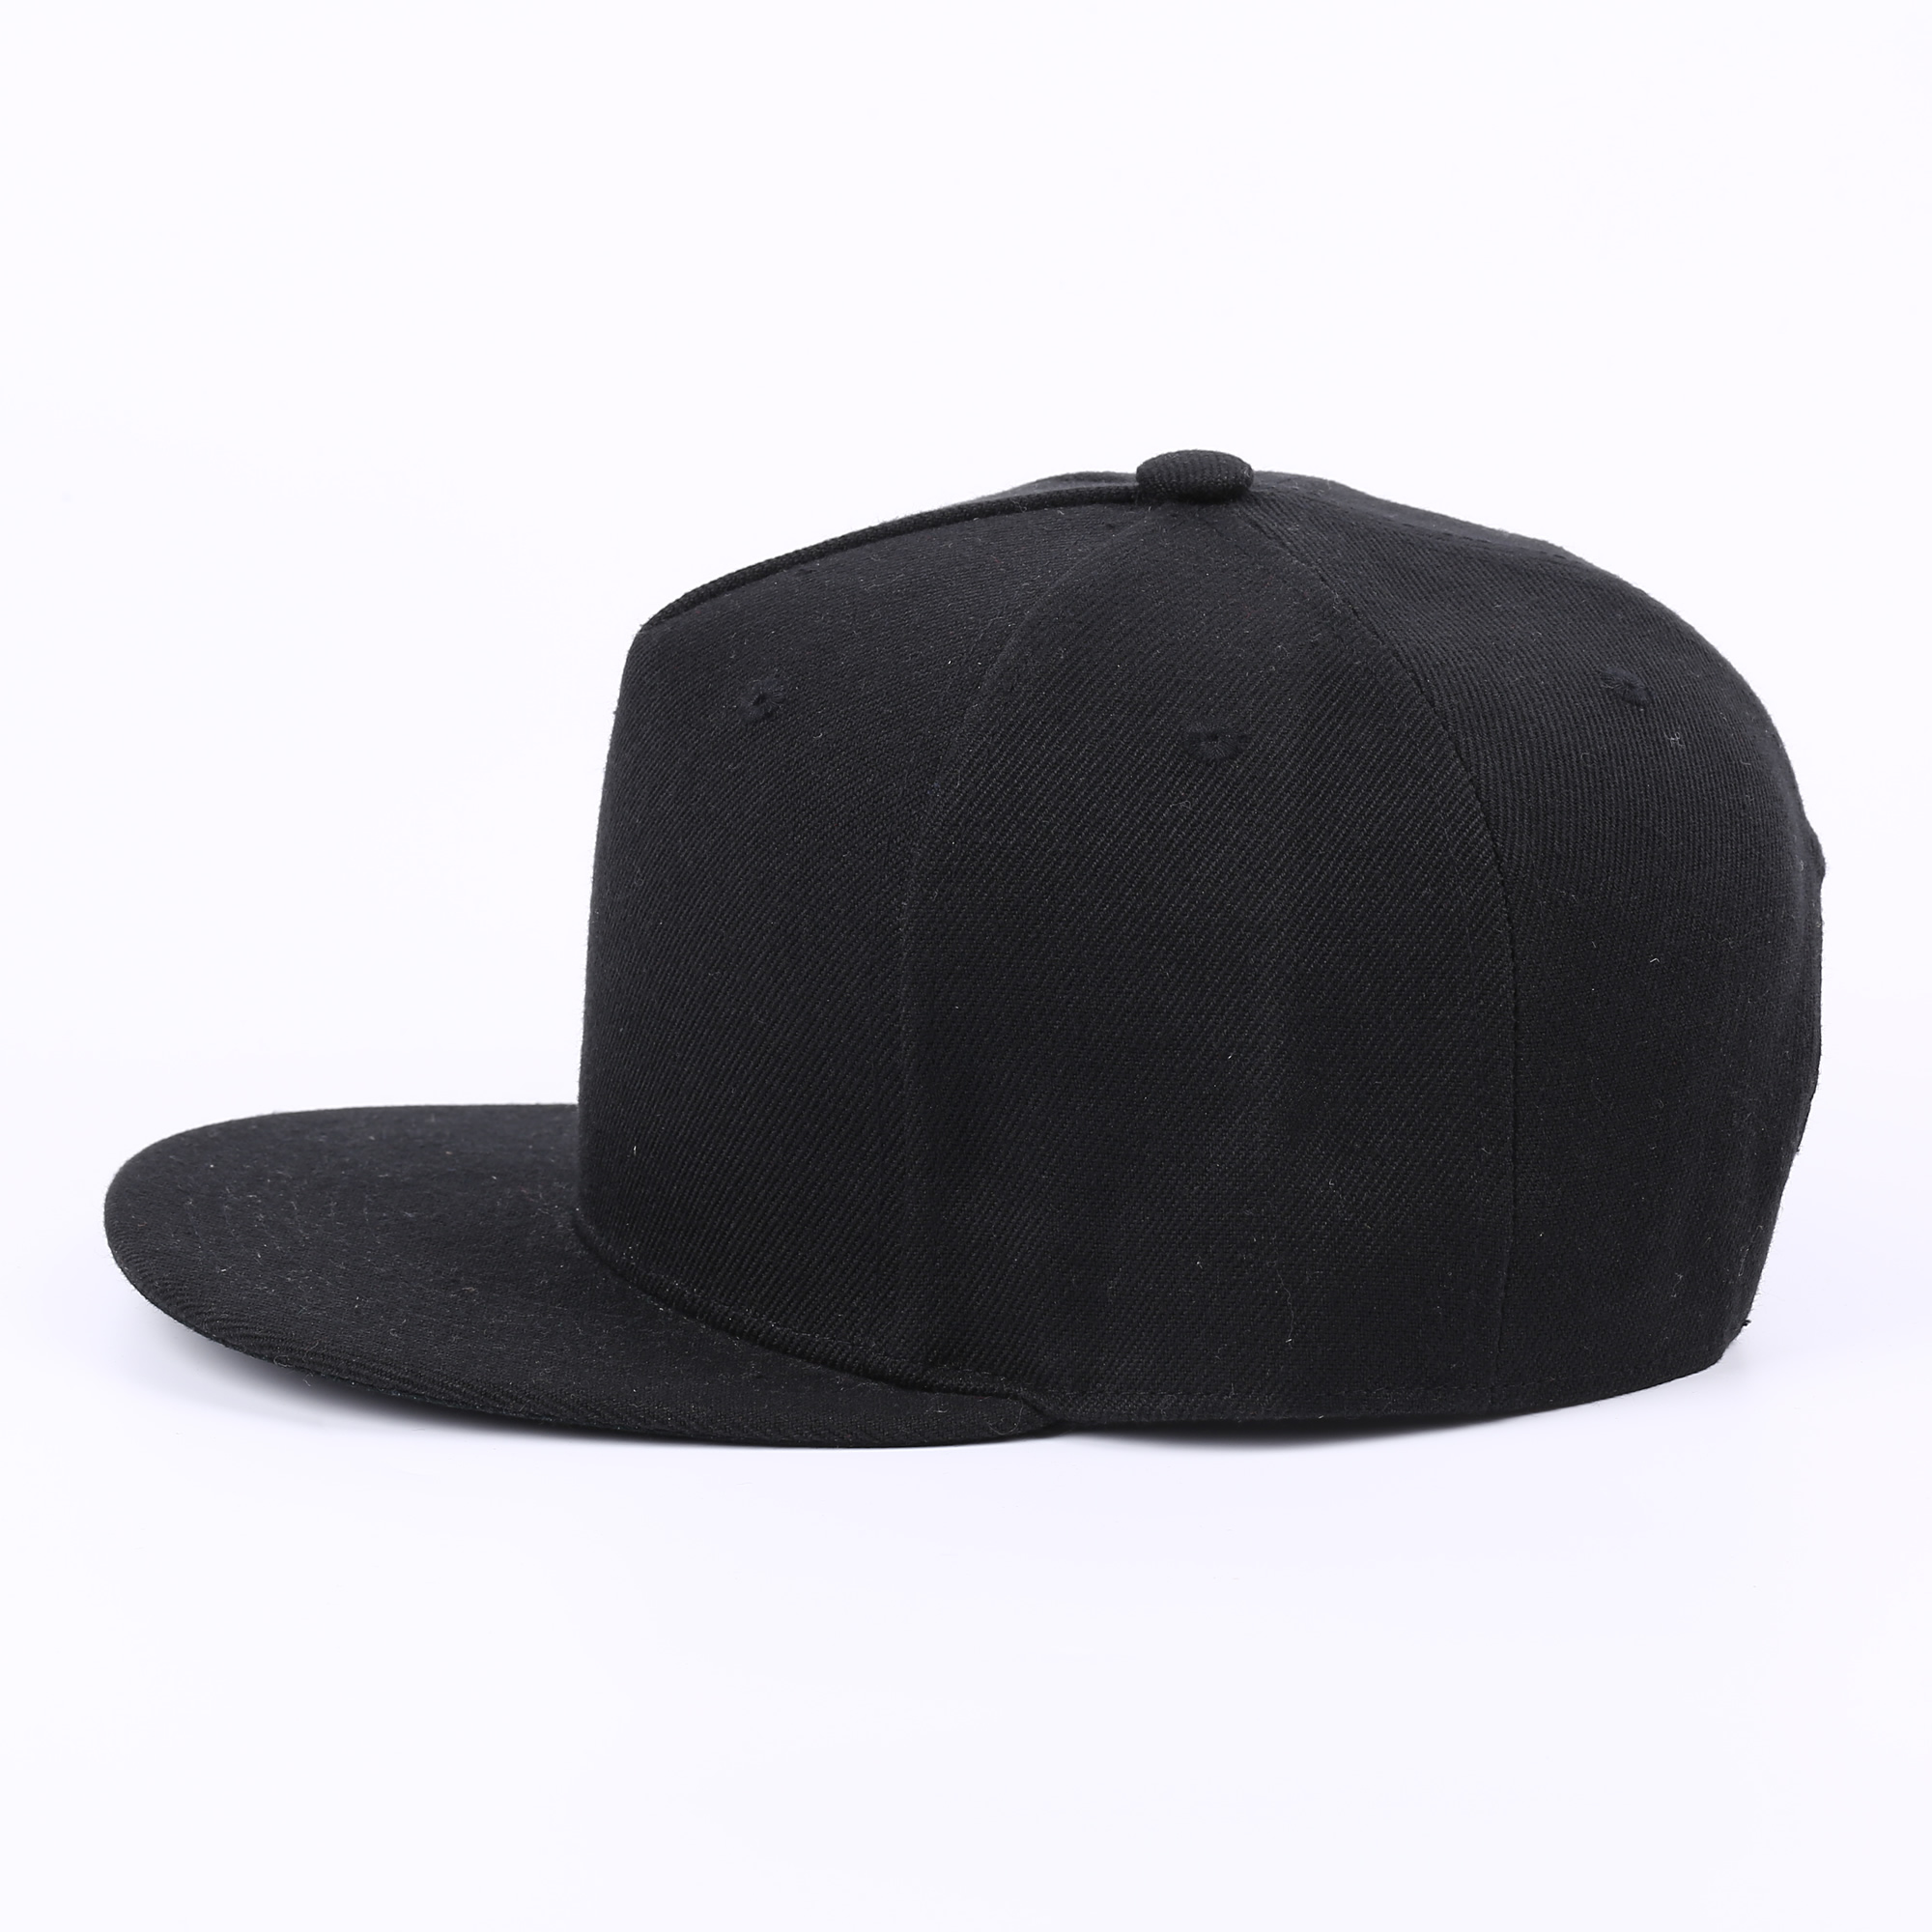 Hip Hop Flat Adult Solid Color Patched Baseball Hat Women Men Custom Snapback Cap